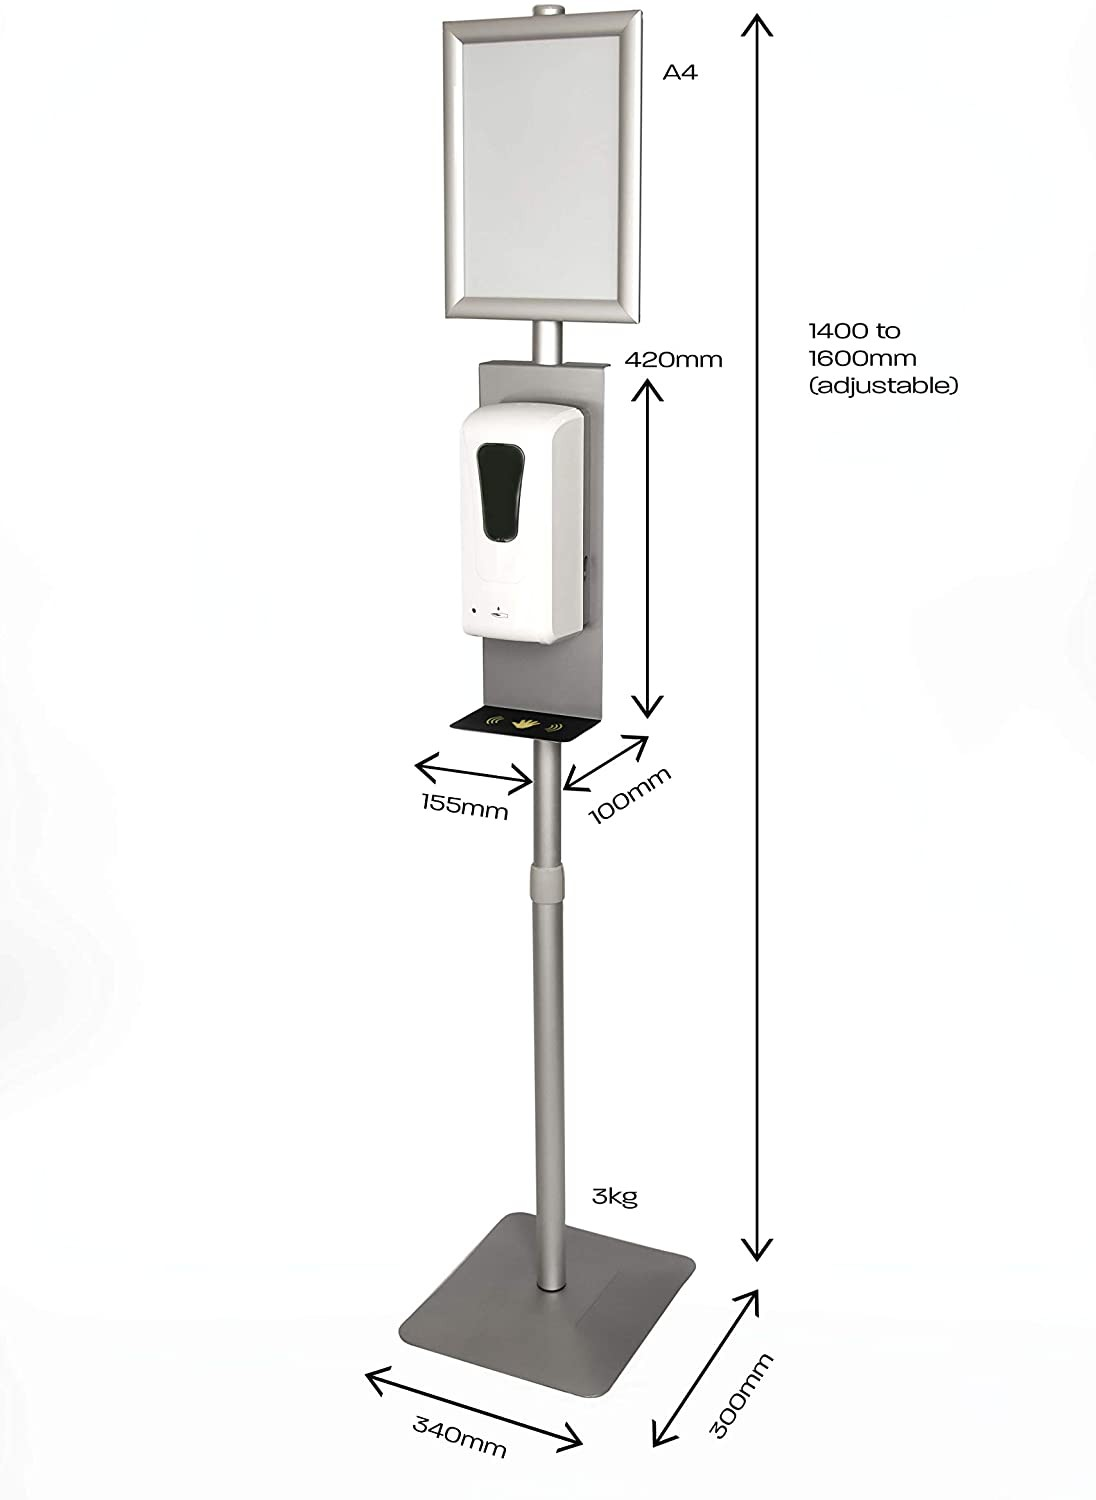 sanitizer dispenser station with poster frame Manufacturers, sanitizer dispenser station with poster frame Factory, Supply sanitizer dispenser station with poster frame